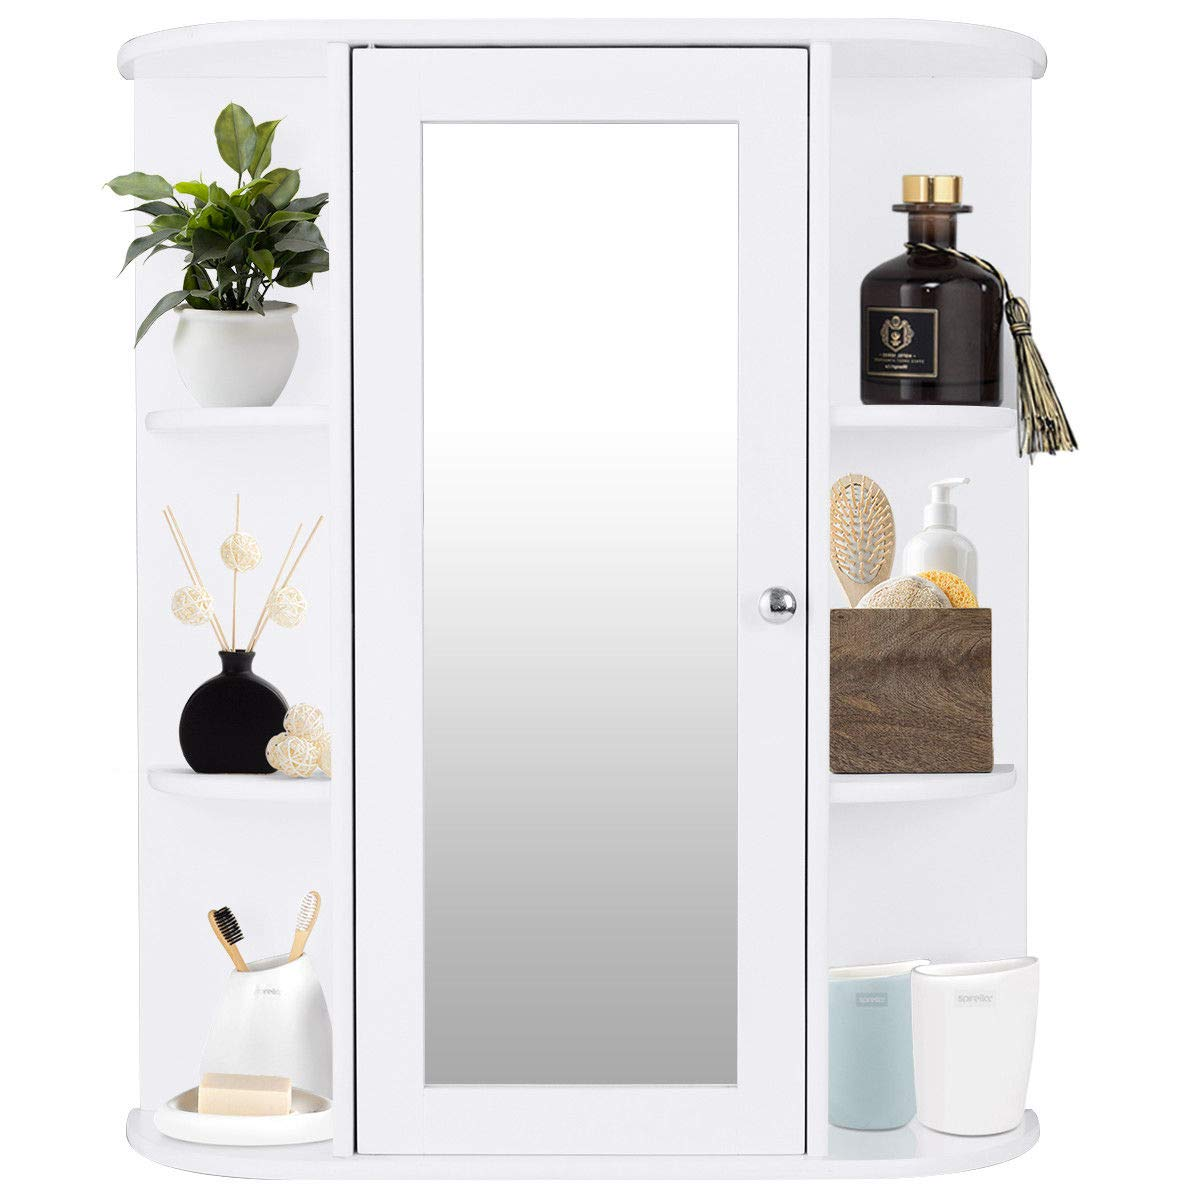 TANGKULA Bathroom Cabinet Single Door Wall Mount with Mirror Organizer Storage Cabinet(2 Tier Inner Shelves) by TANGKULA (Image #5)